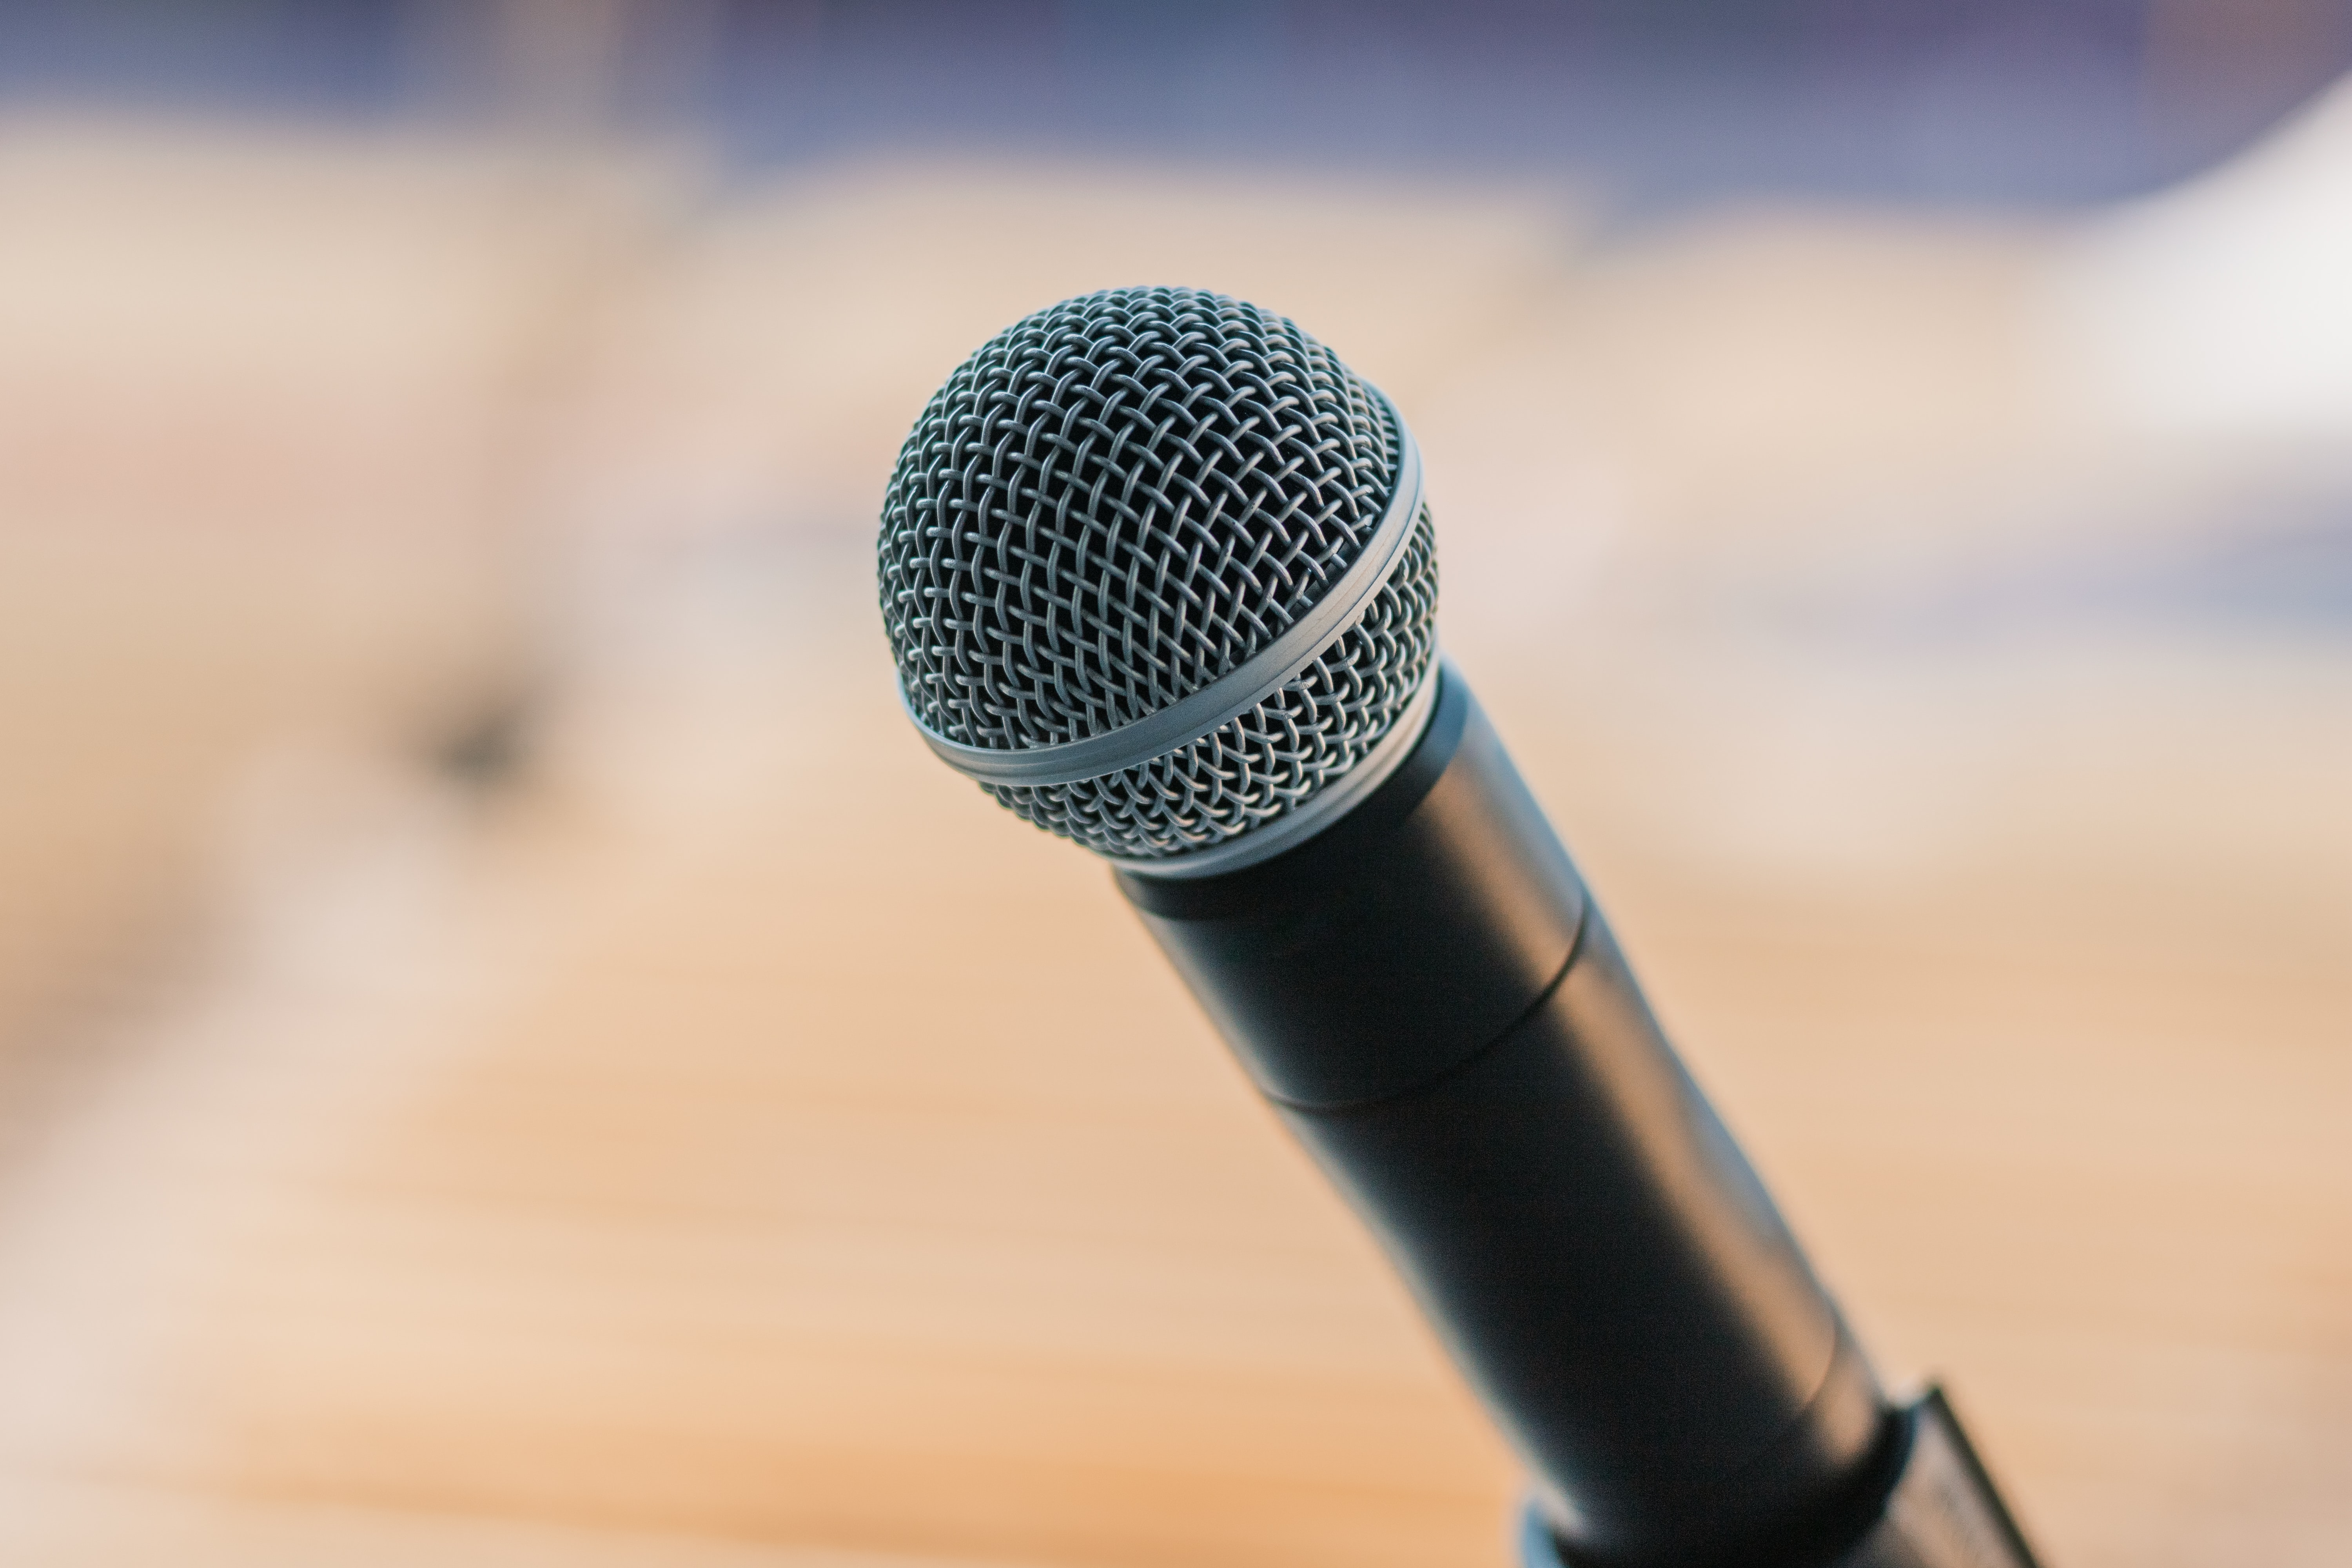 Mic. From Victor Barrios on unsplash.